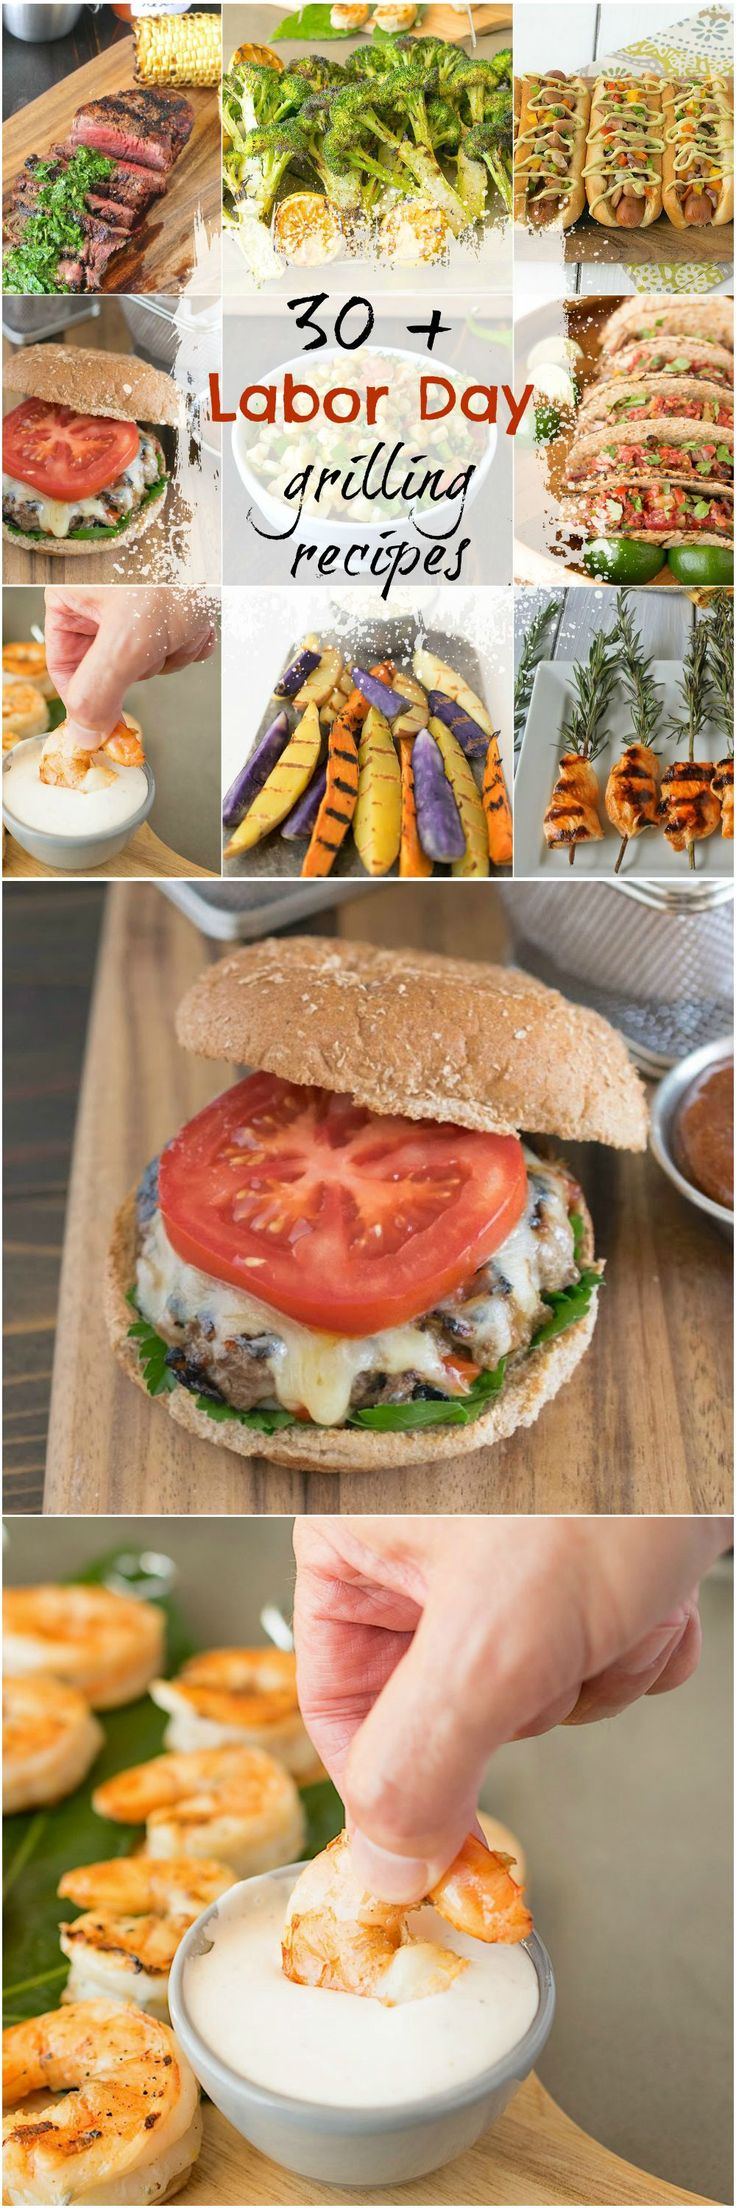 30 + Labor Day grilling recipes to help you with your Labor Day meal planning. From side dishes, to meat, to seafood and burgers, I have you covered.